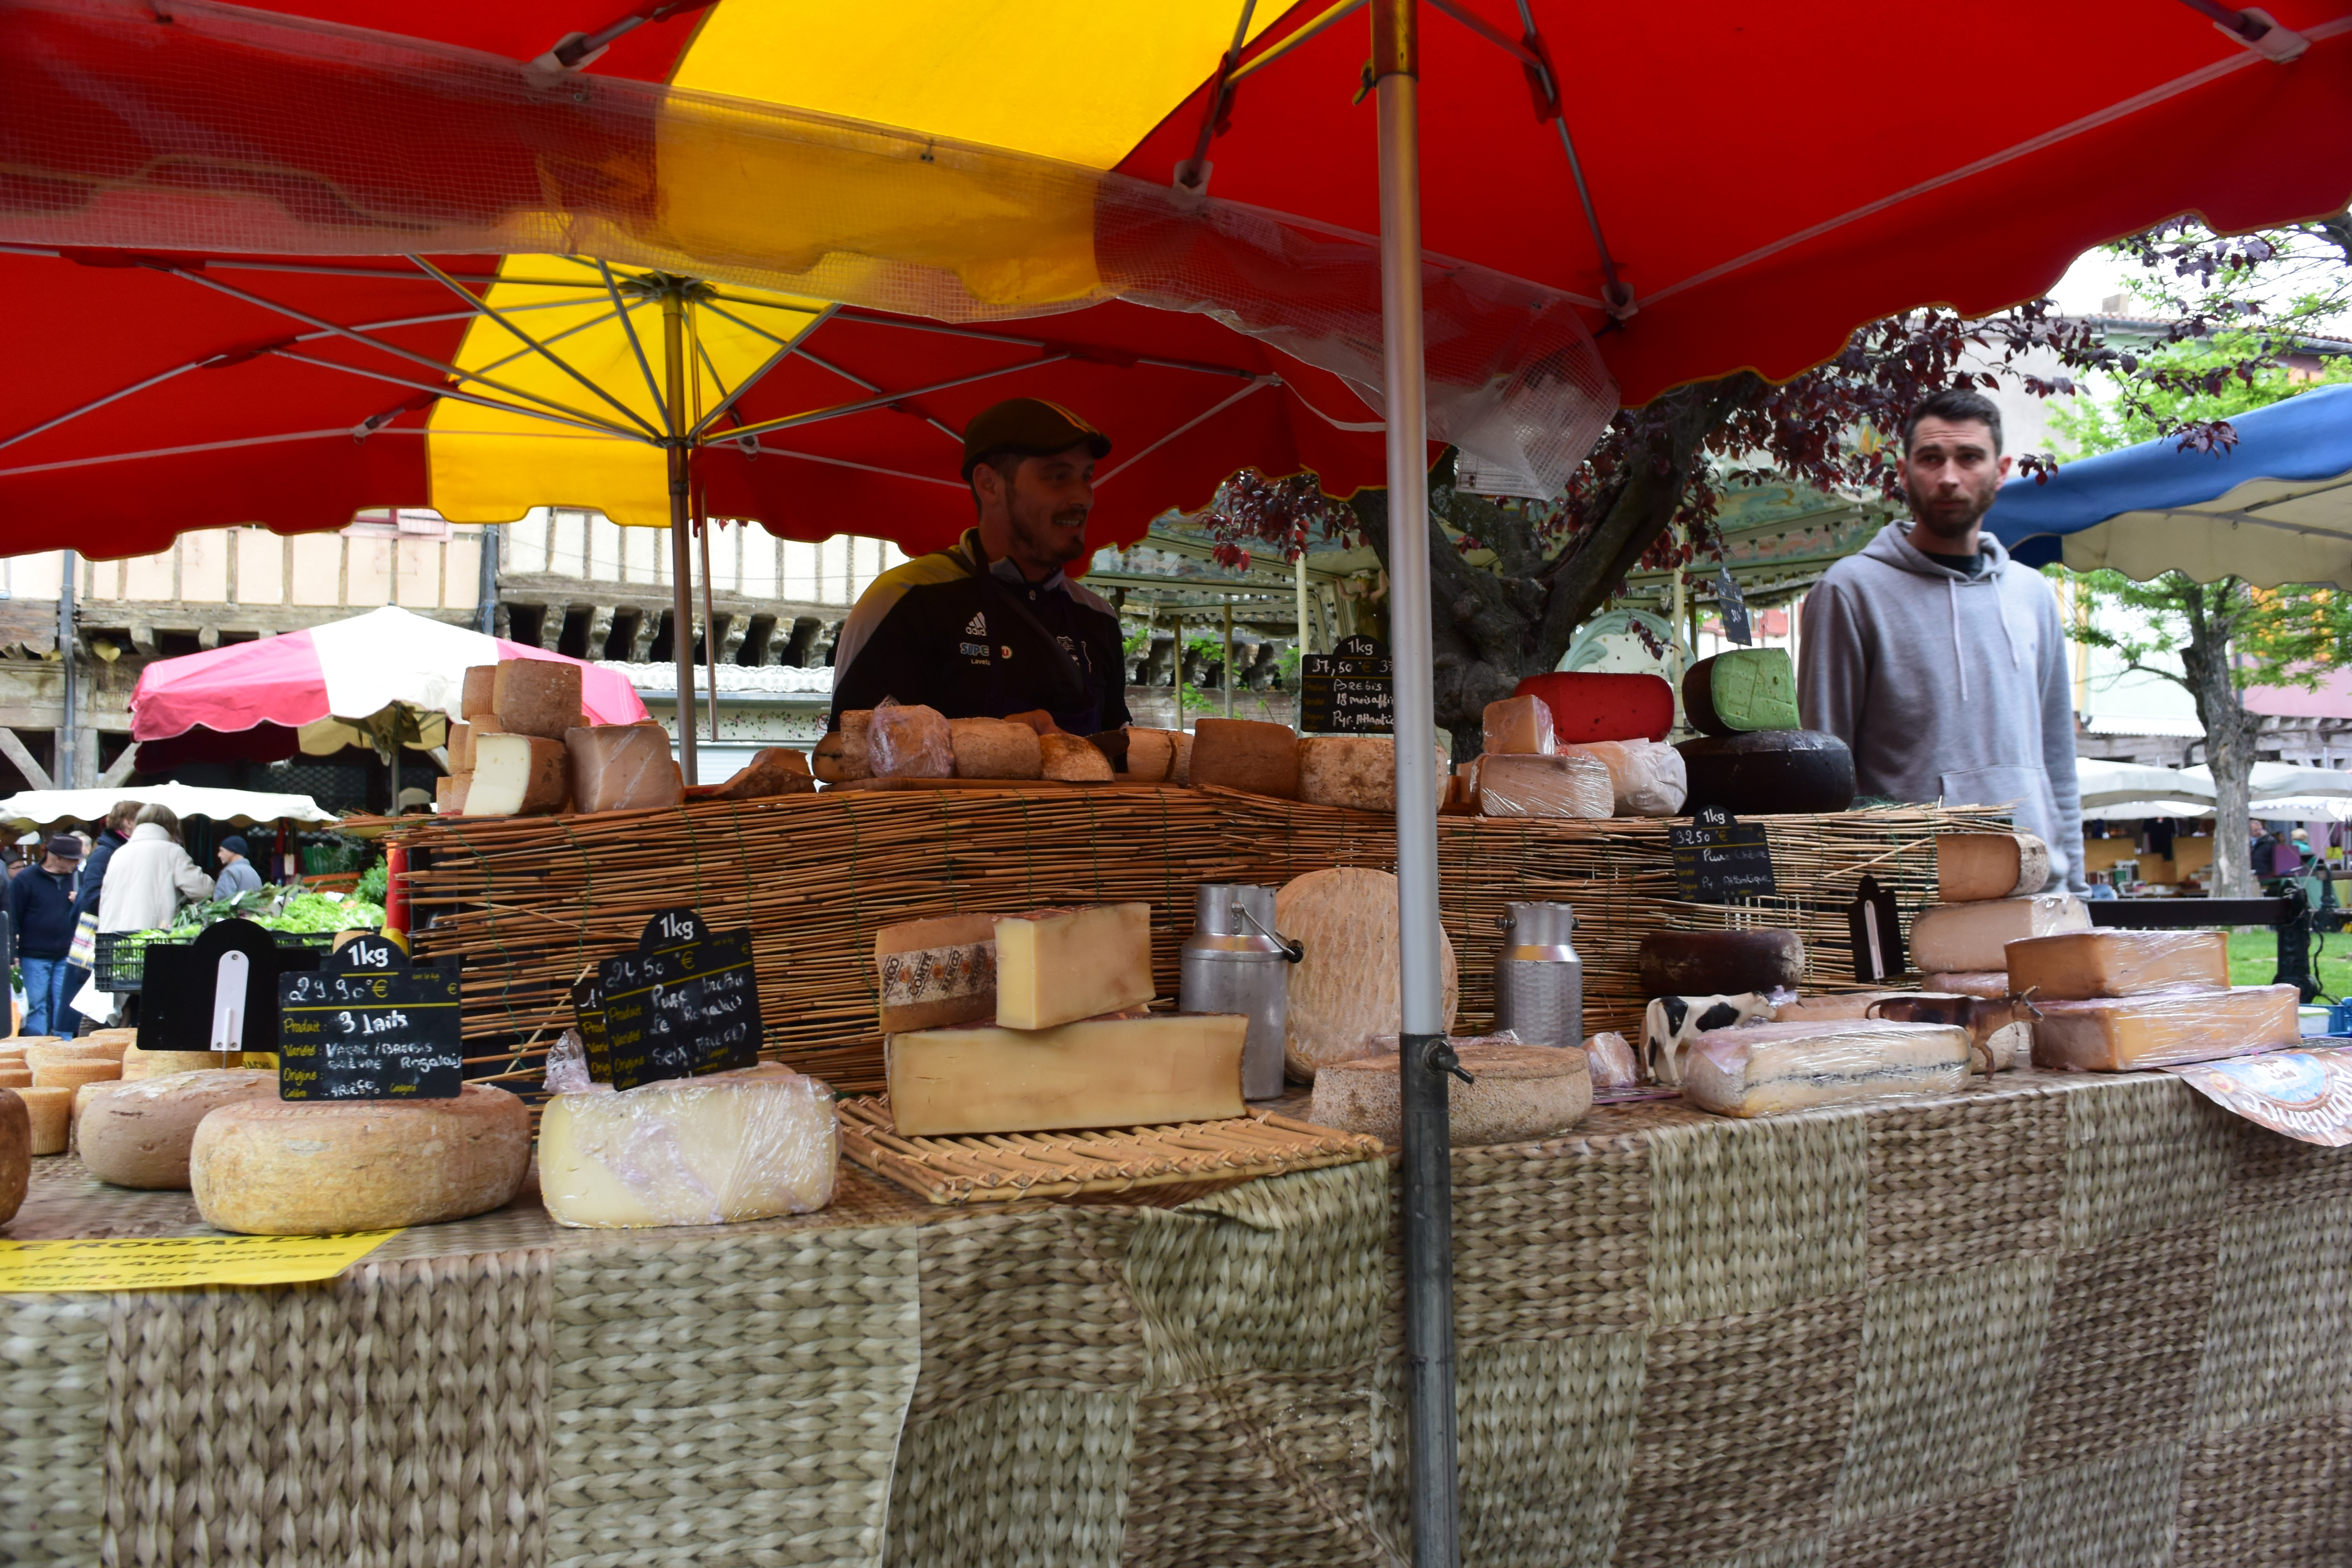 Cheese vendor at the market